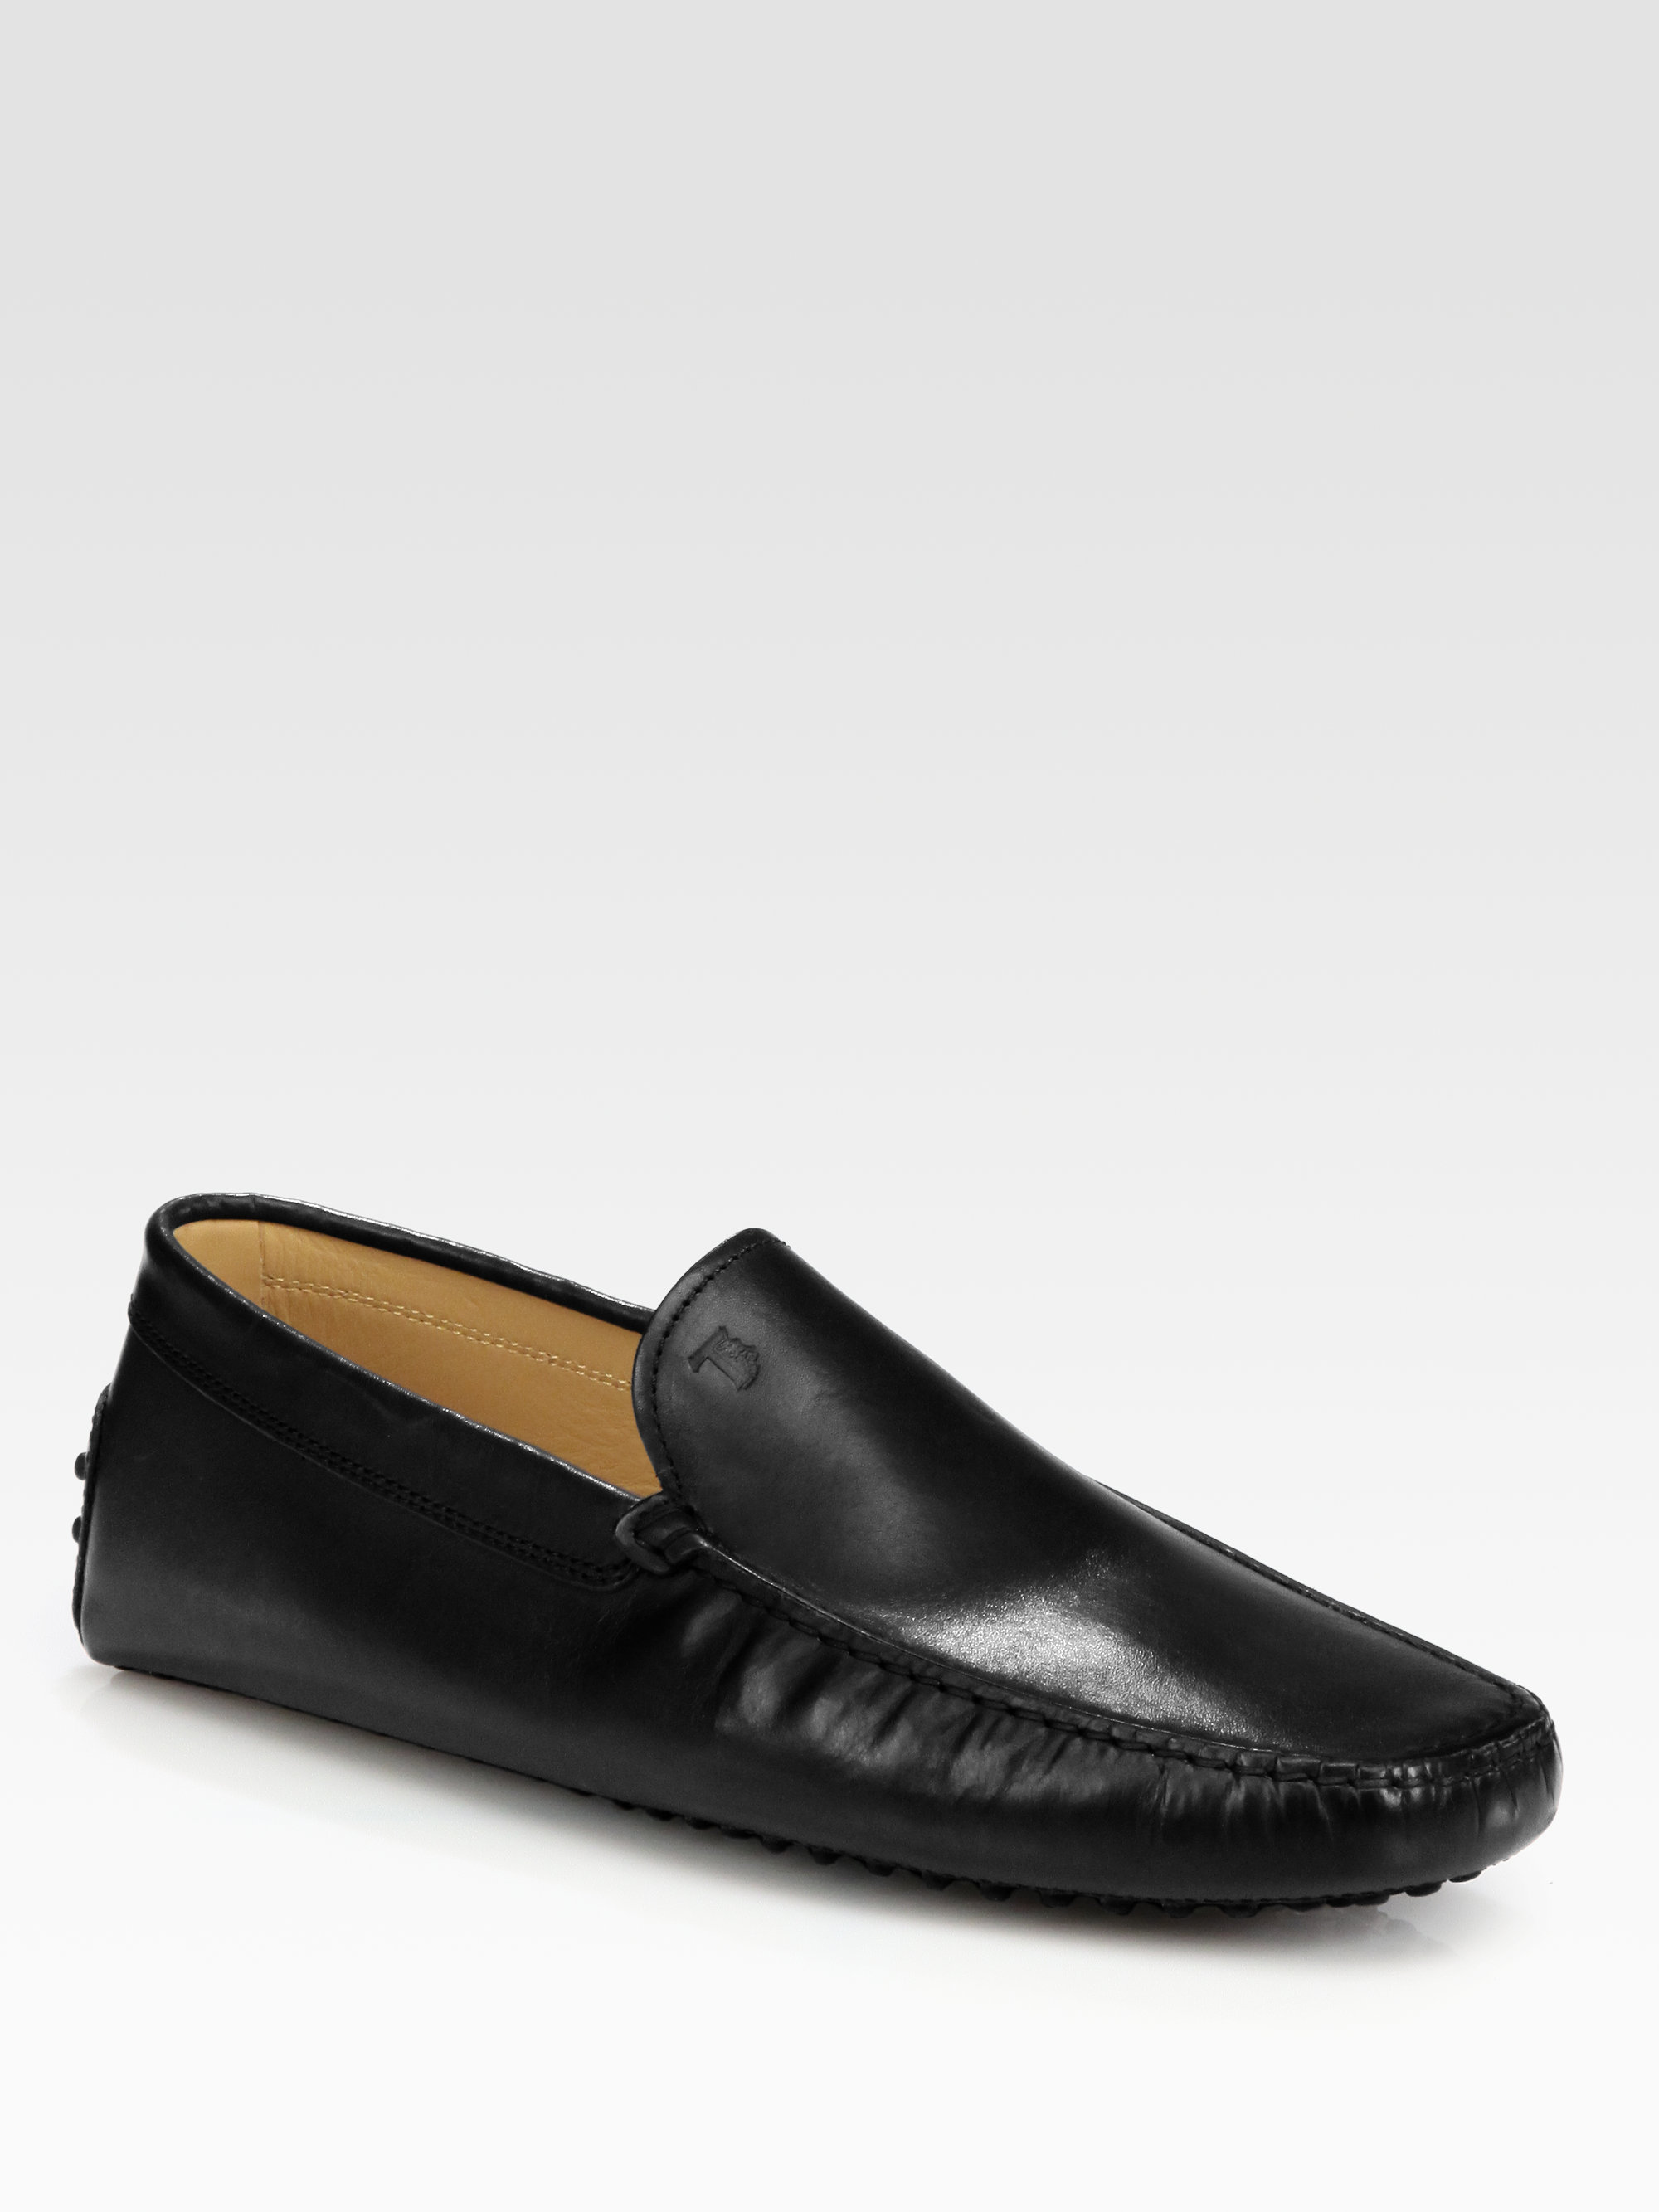 Tod's Pantofola loafers sale in China sale outlet store Yp7s8Z